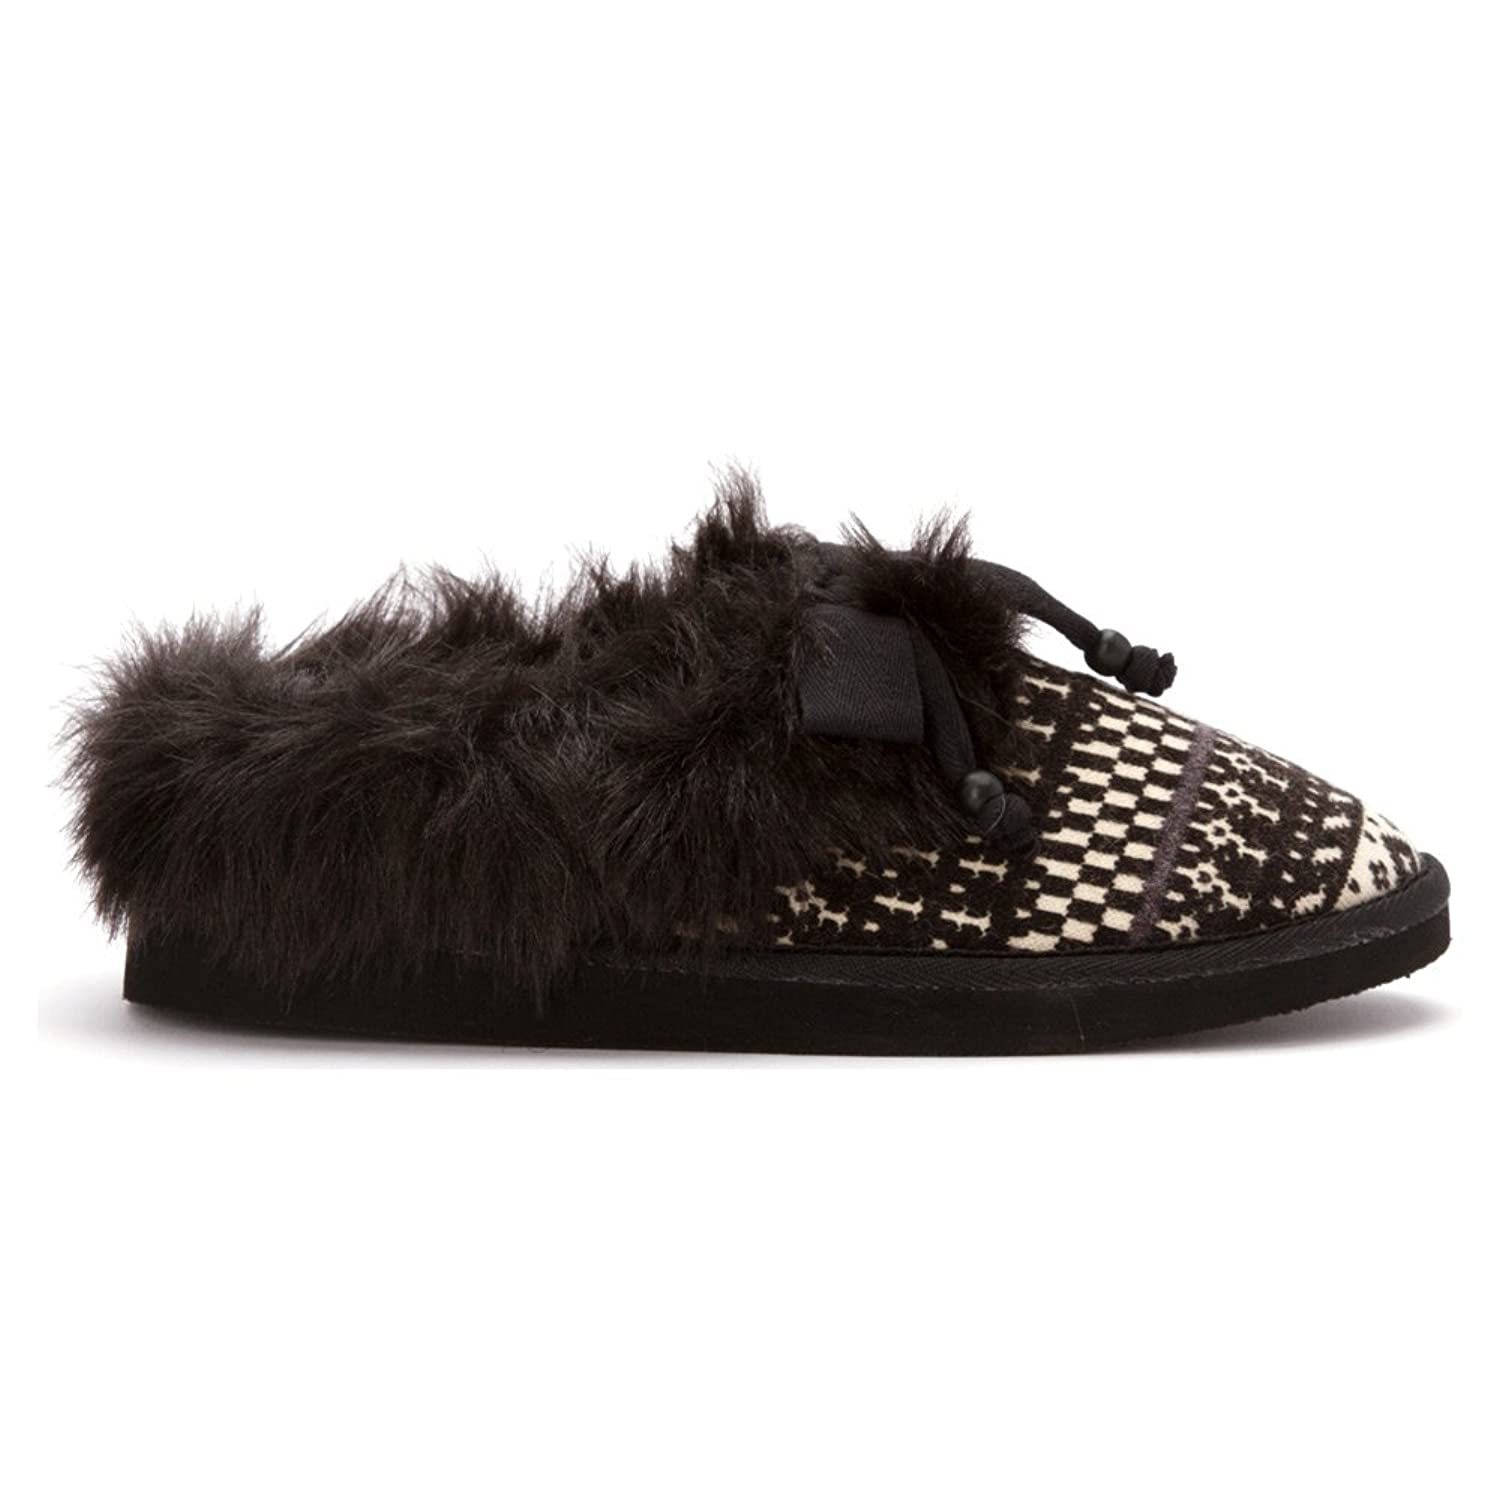 Womens Slippers Rocket Dog Barstow Charcoal Beany